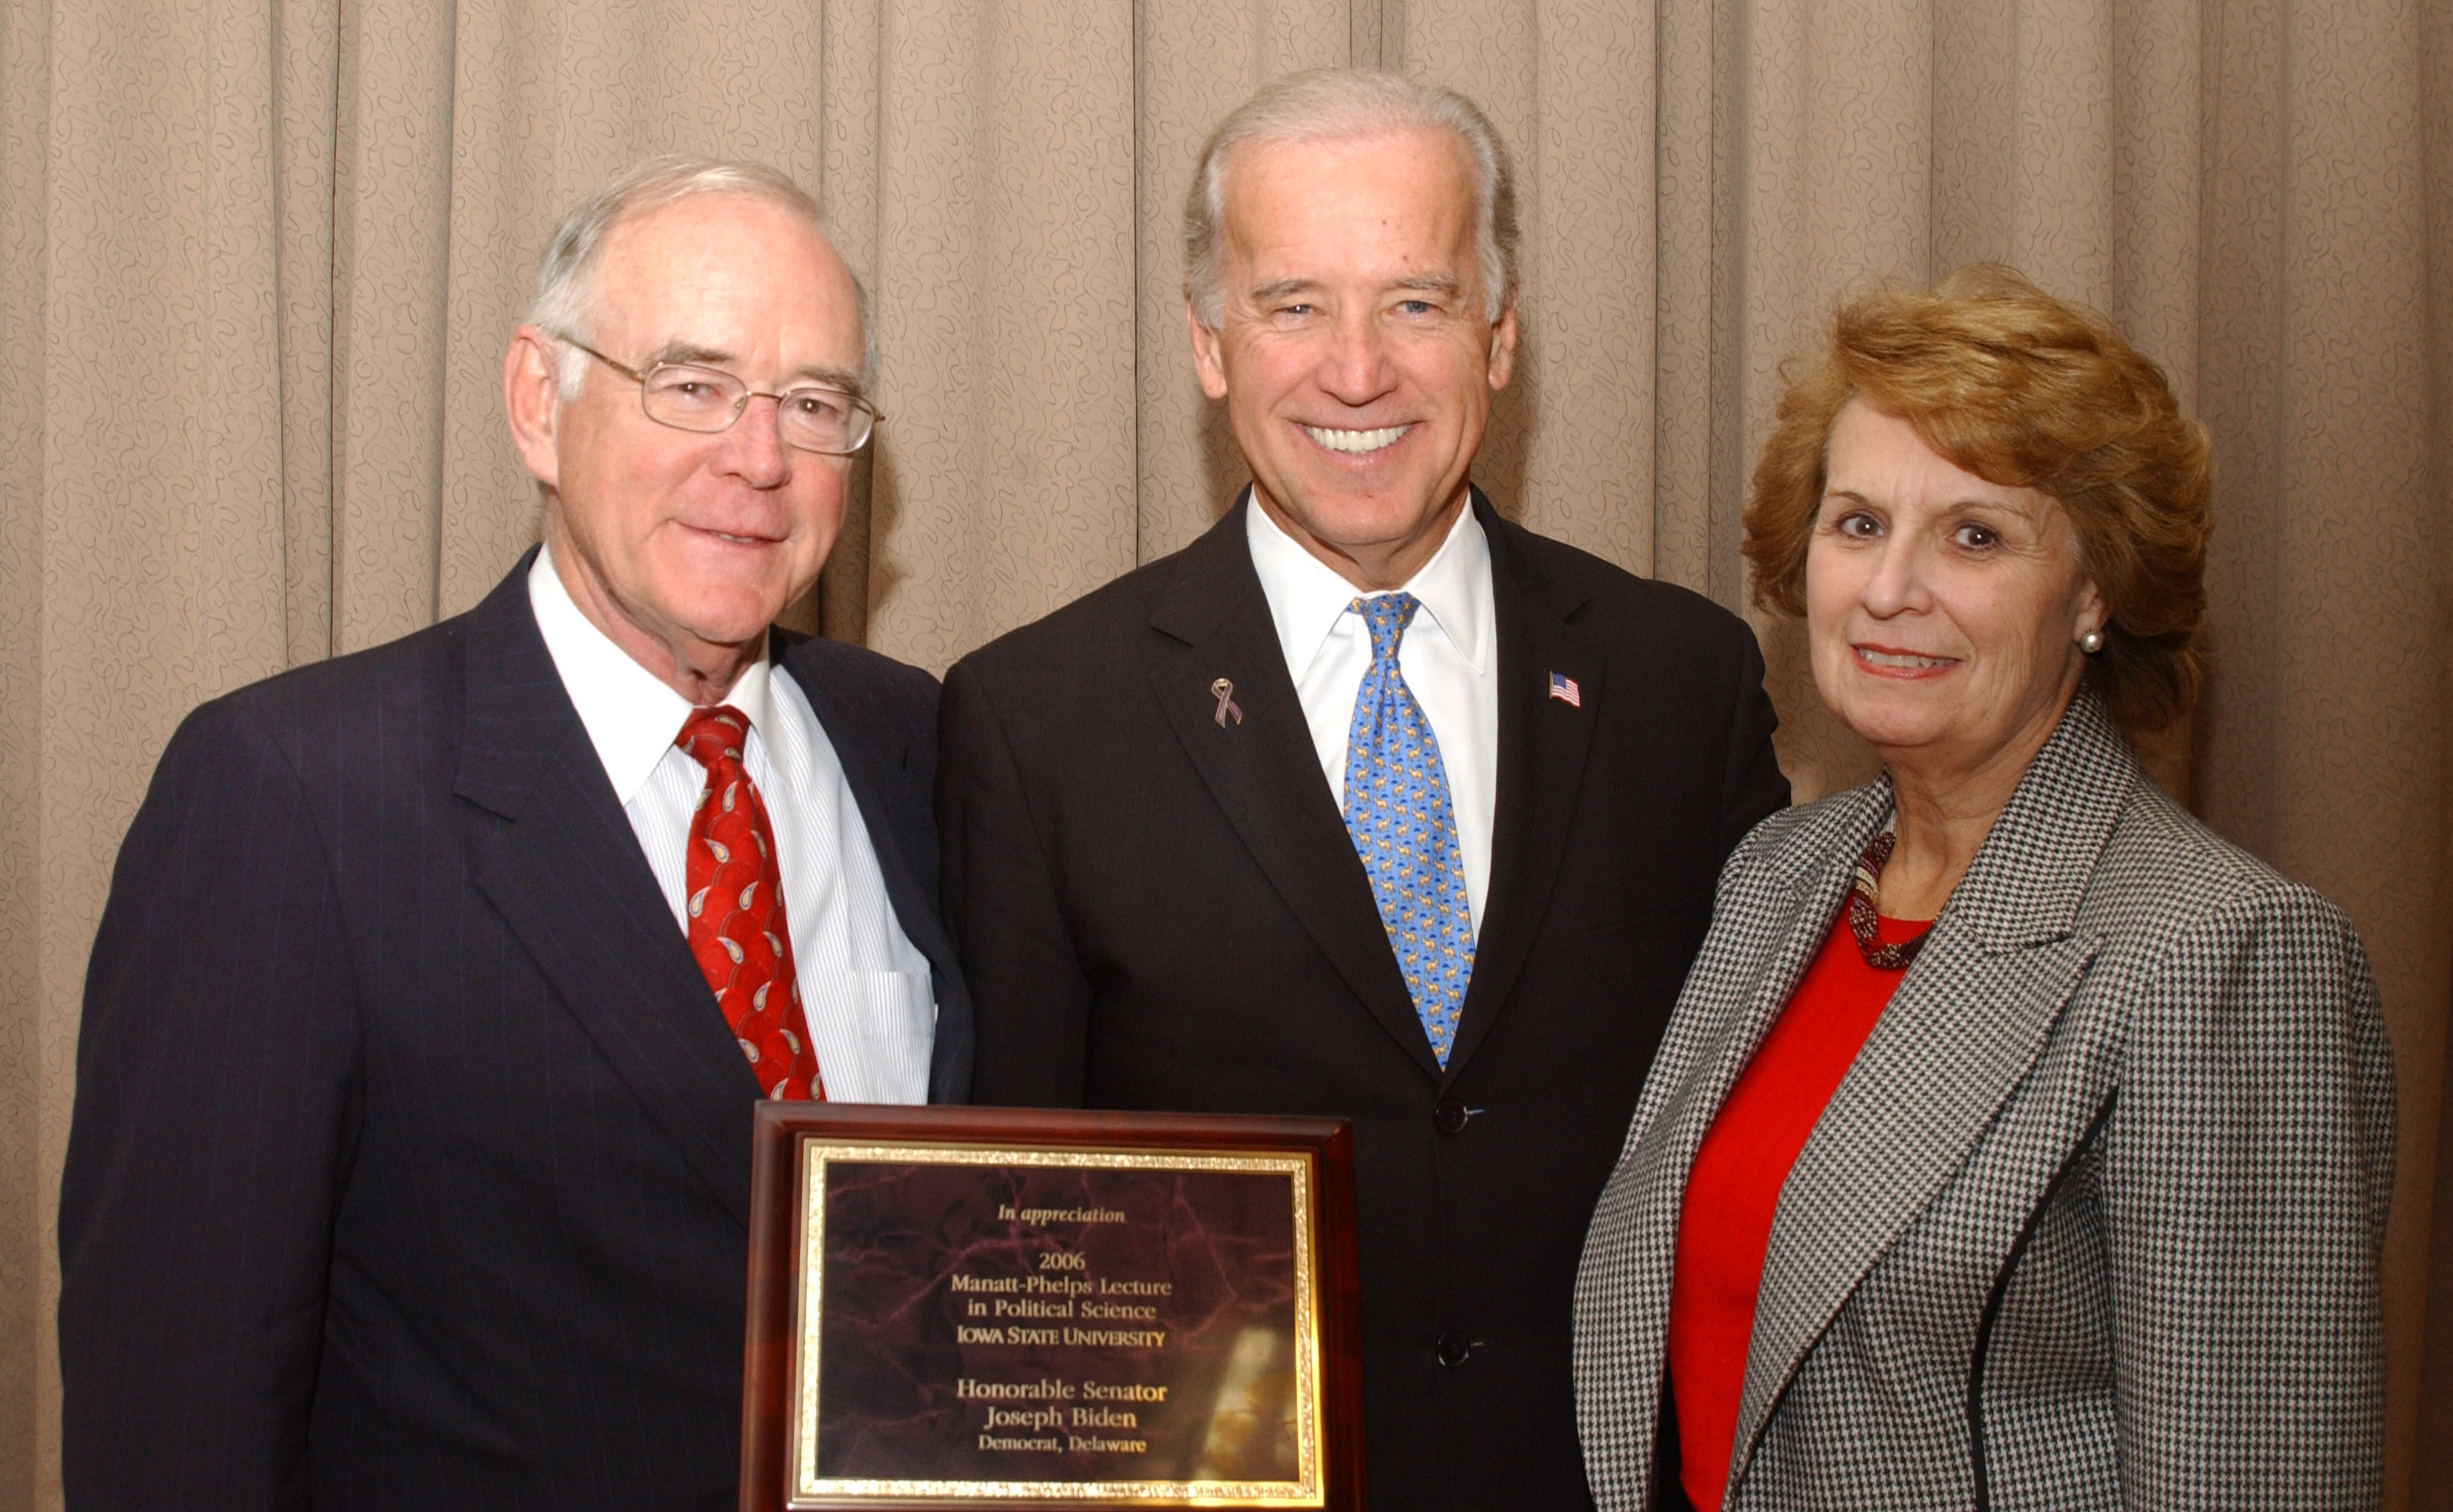 Vice President Joe Biden delivered the 2006 Manatt-Phelps Lecture when he was U.S. Senator from Delaware. Photographed with him are Kathleen Manatt and the late Charles T. Manatt.